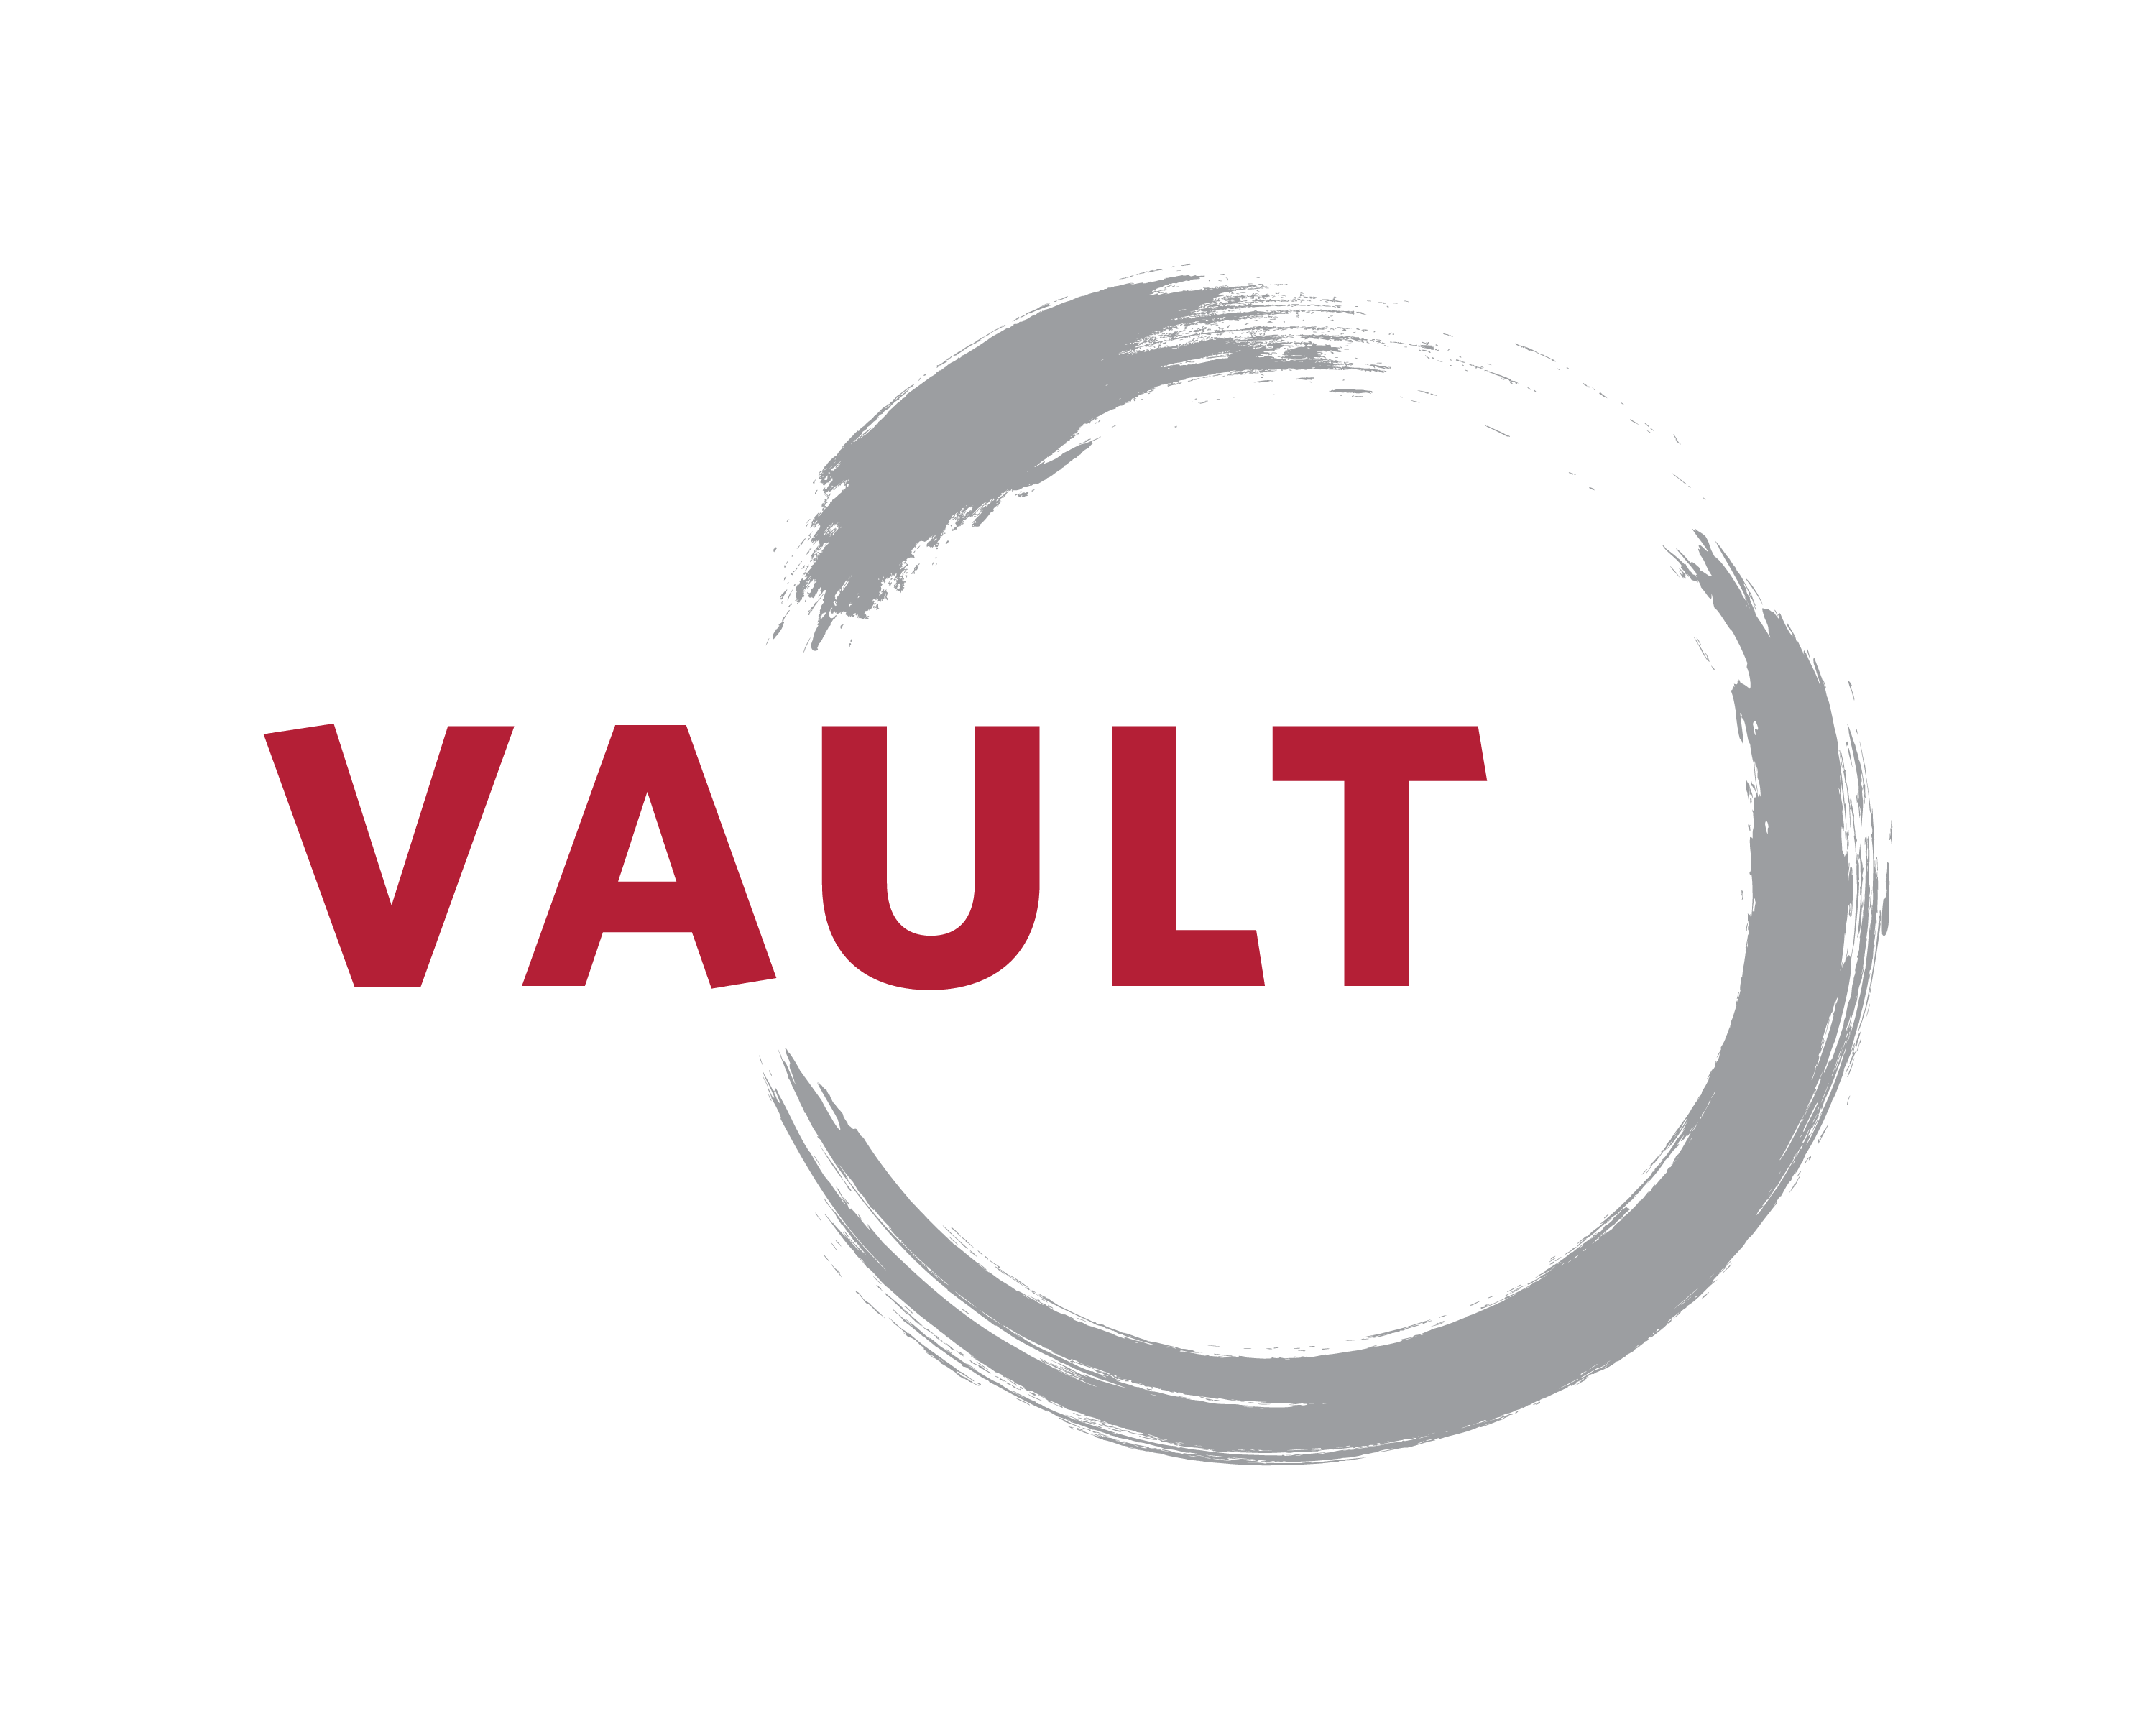 Vault Insurance Logo with red capital letters and a gray circle